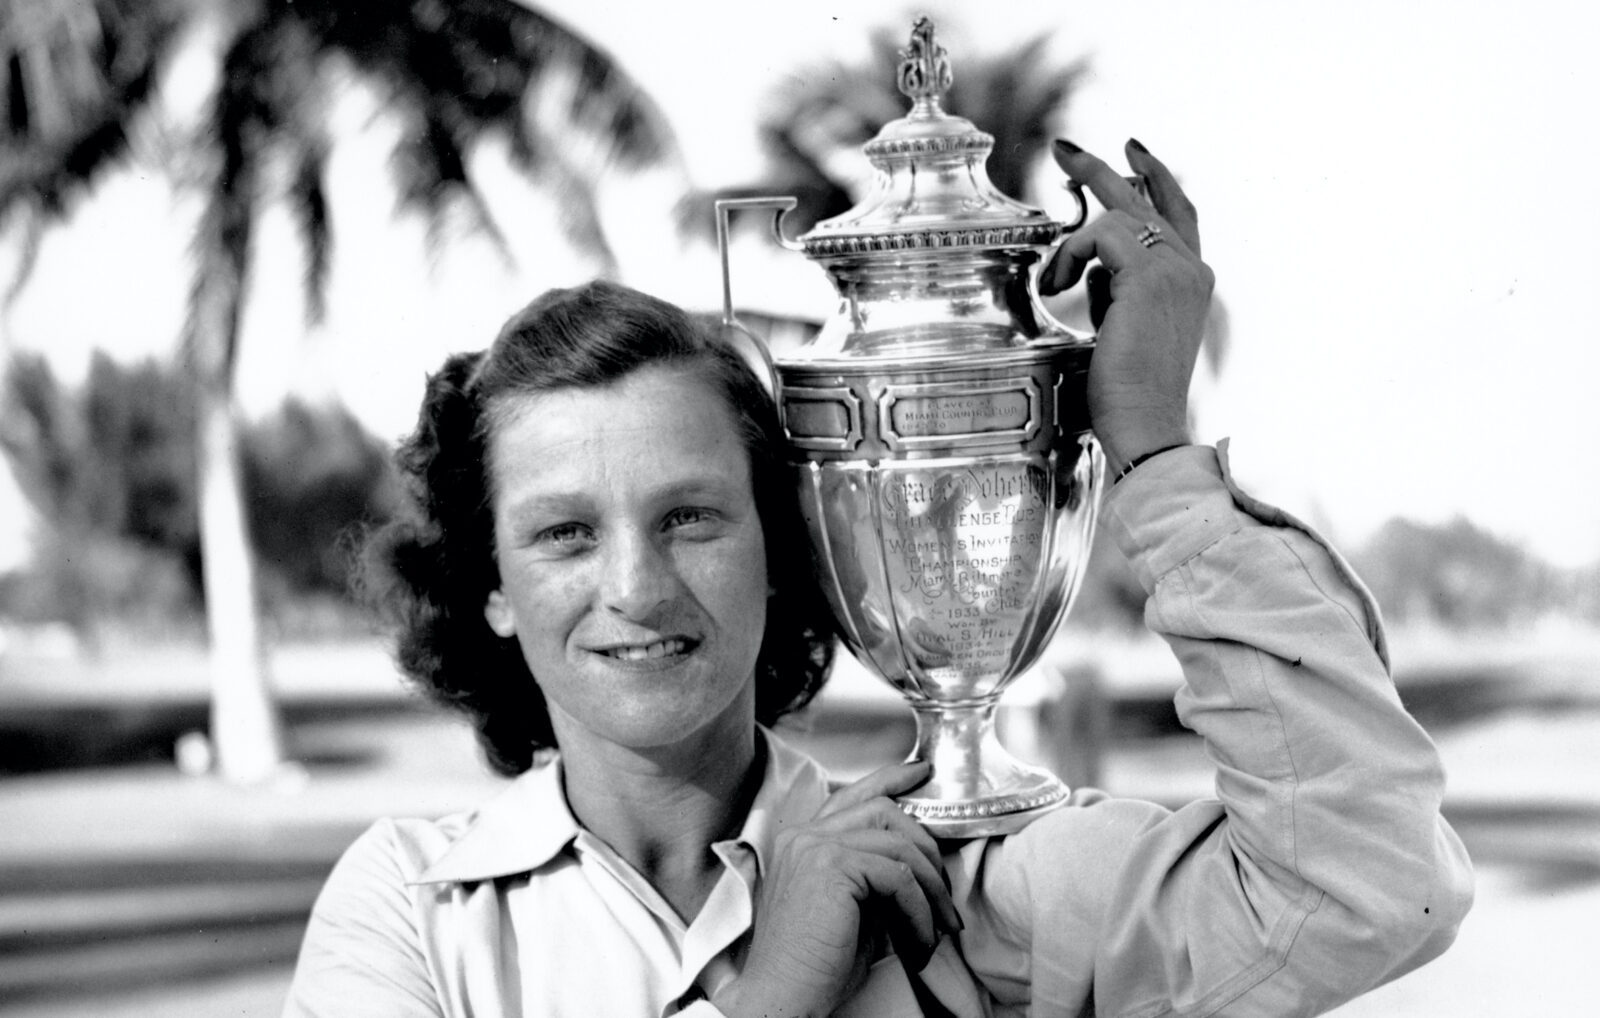 Babe Didrikson Zaharias poses with her trophy at the Miami Biltmore Country Club in Miami, Fl. on Feb. 1, 1947. Zaharias was presented the challenge cup for winning the Helen Lee Doherty Women's Invitational Championship golf tournament. (AP Photo)